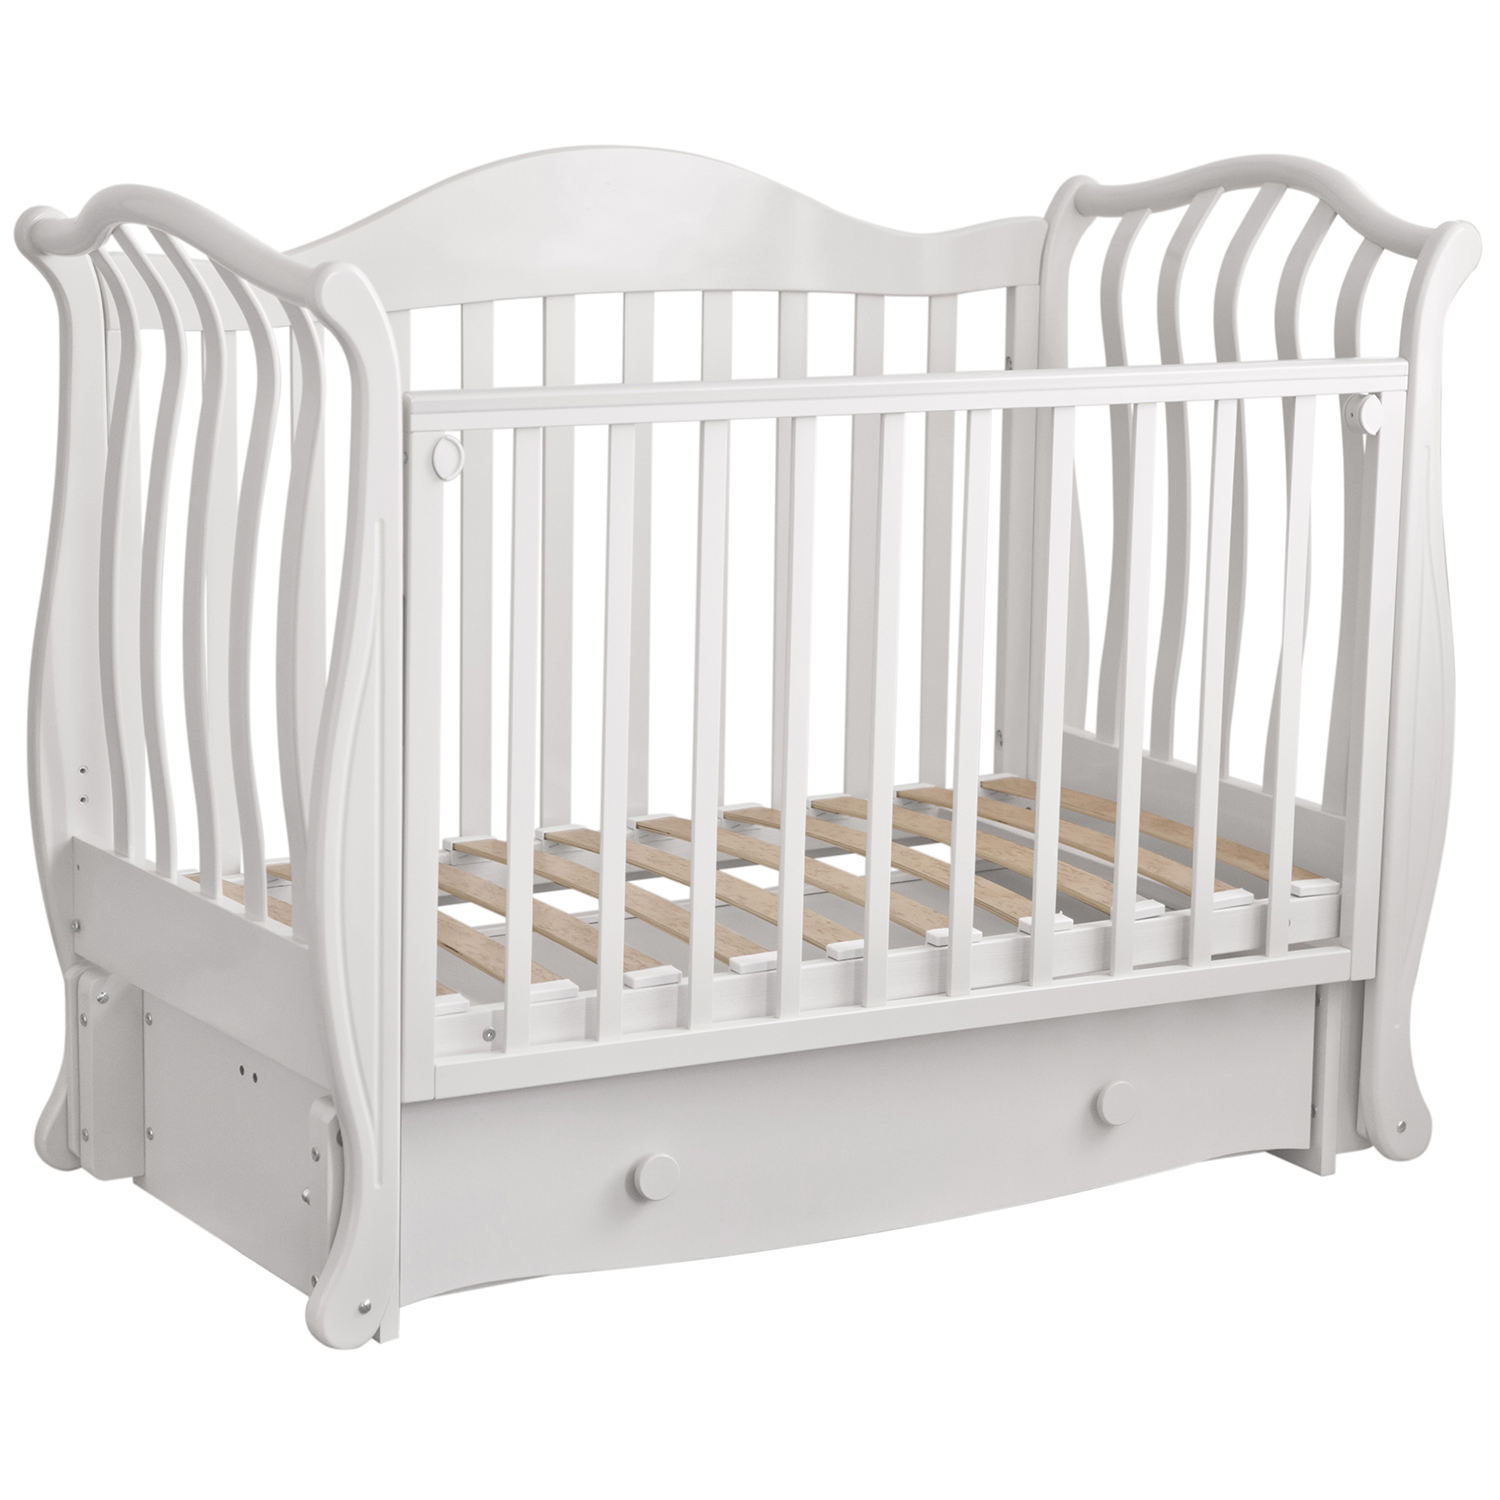 "Hot Selling Orthopedische Eco Massief Berken Hout Baby <span class=keywords><strong>Bed</strong></span> Wieg ""Julianna"" Met Een Longitudinale Swing Slinger, elegant Design"